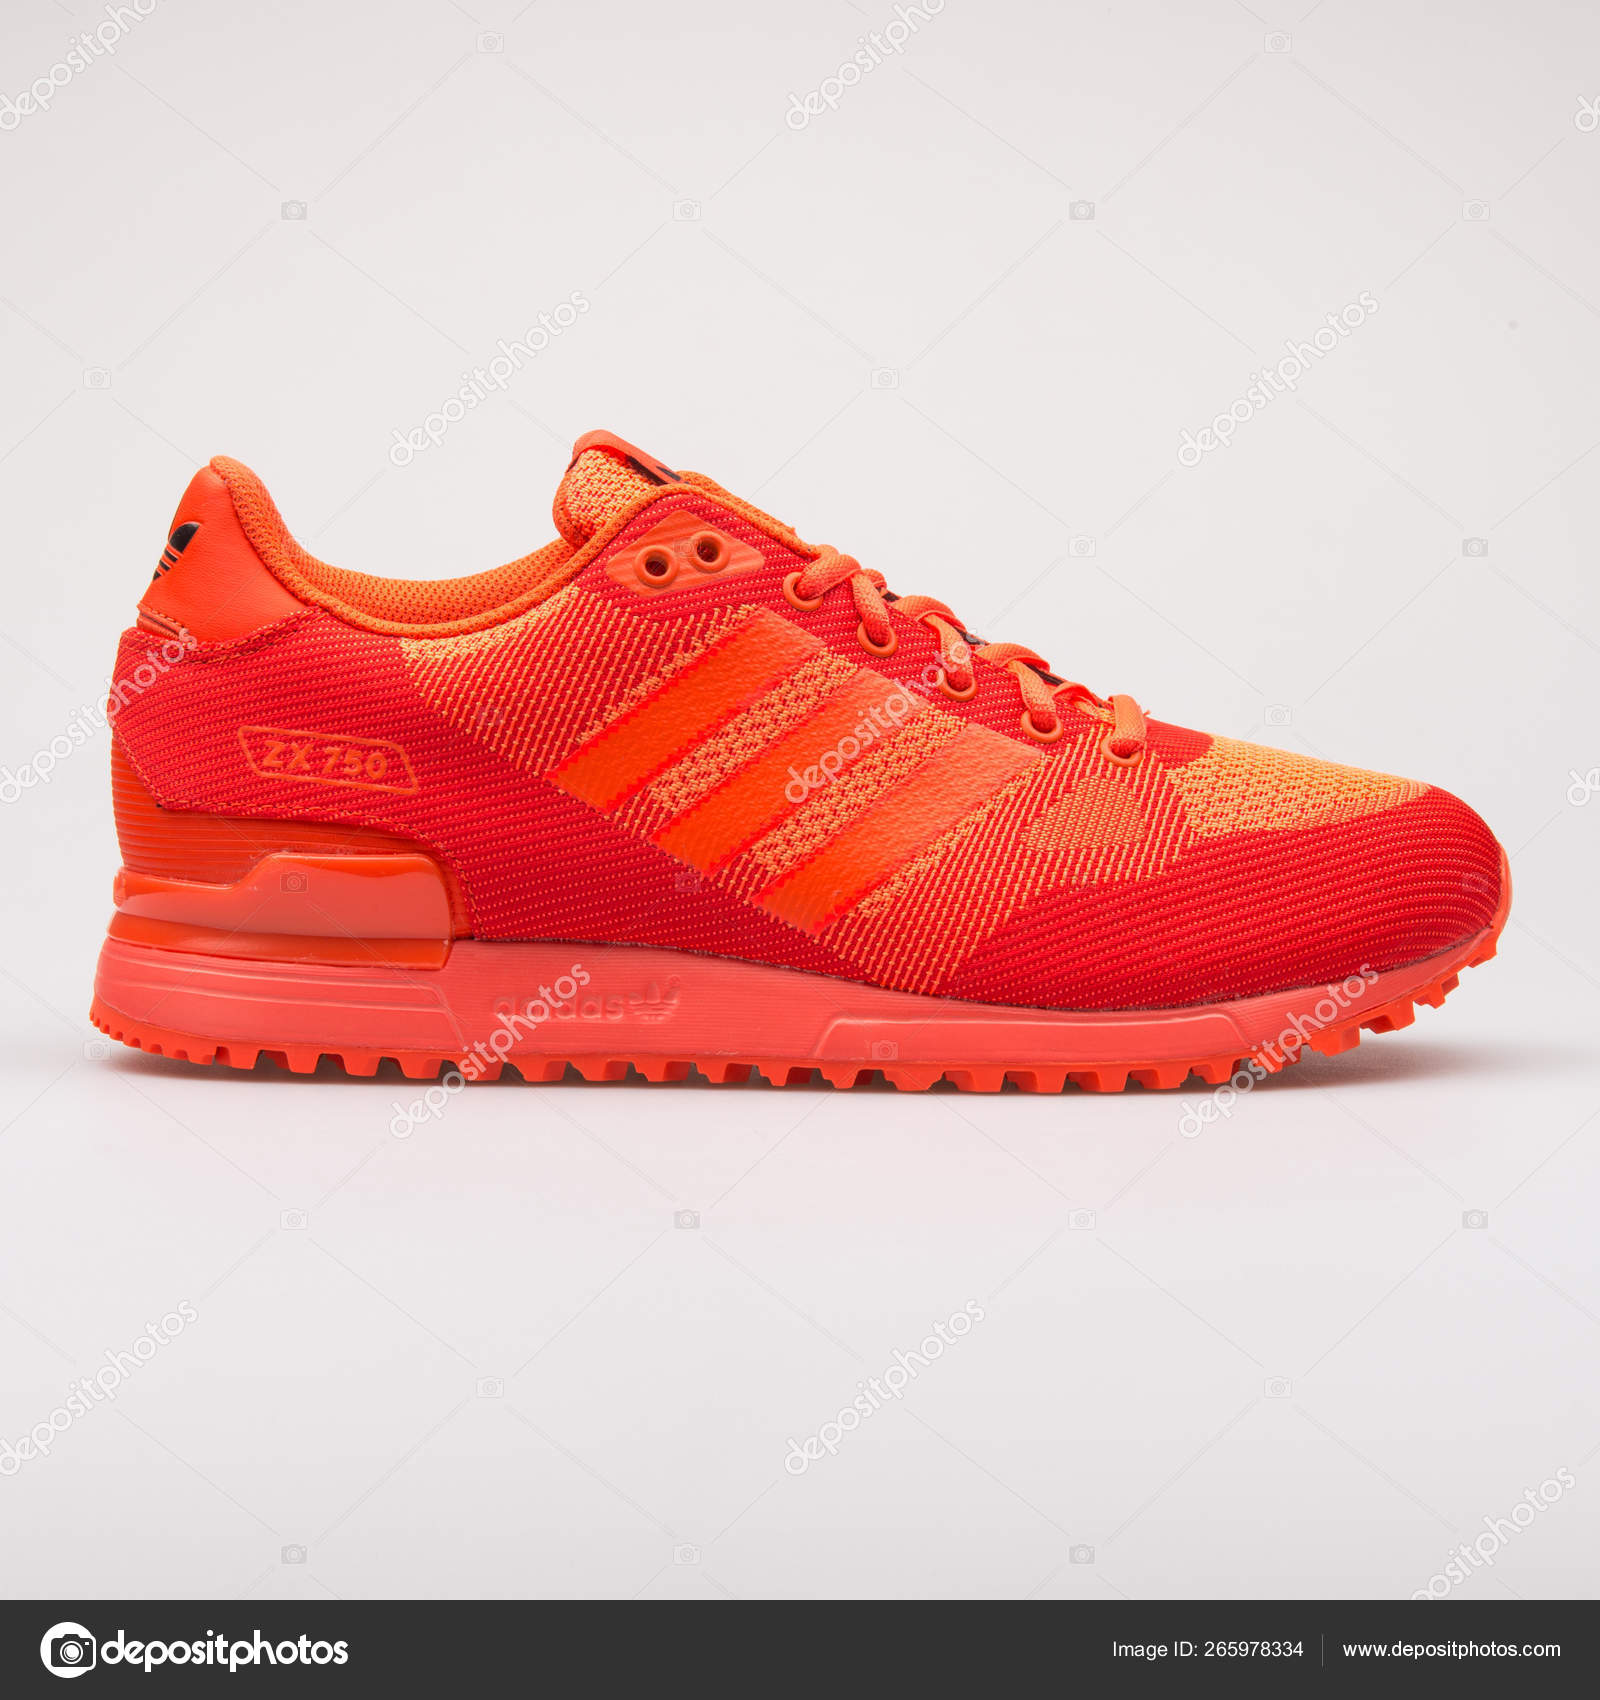 new product c3297 c5e15 Adidas ZX 750 WV solar red sneaker – Stock Editorial Photo ...